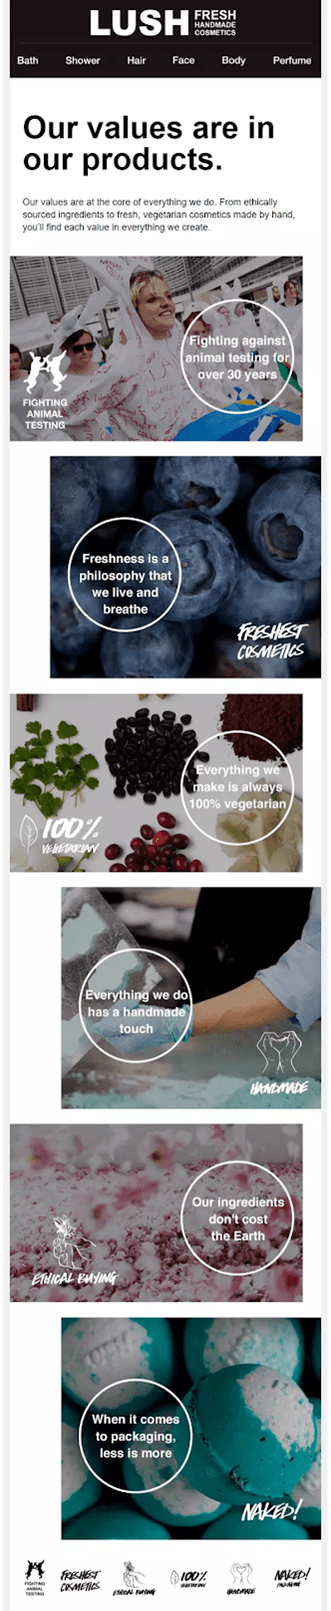 email marketing consultant example lush